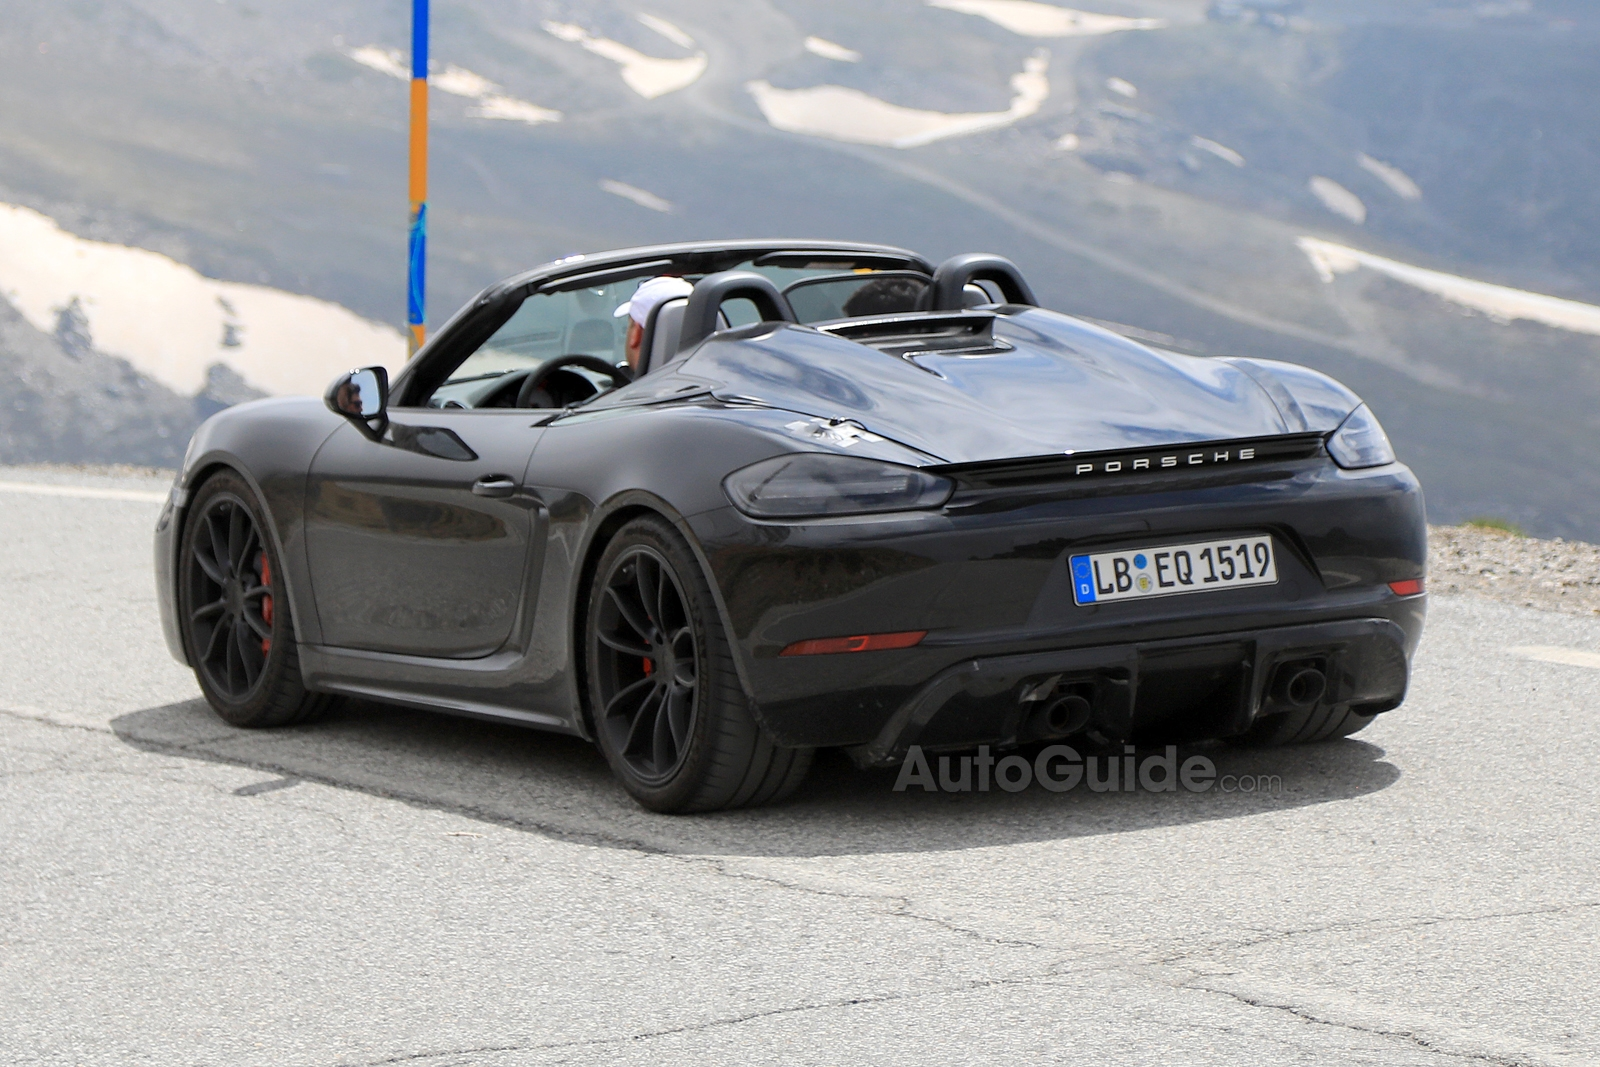 2019 porsche 718 boxster spyder spied with its top down. Black Bedroom Furniture Sets. Home Design Ideas